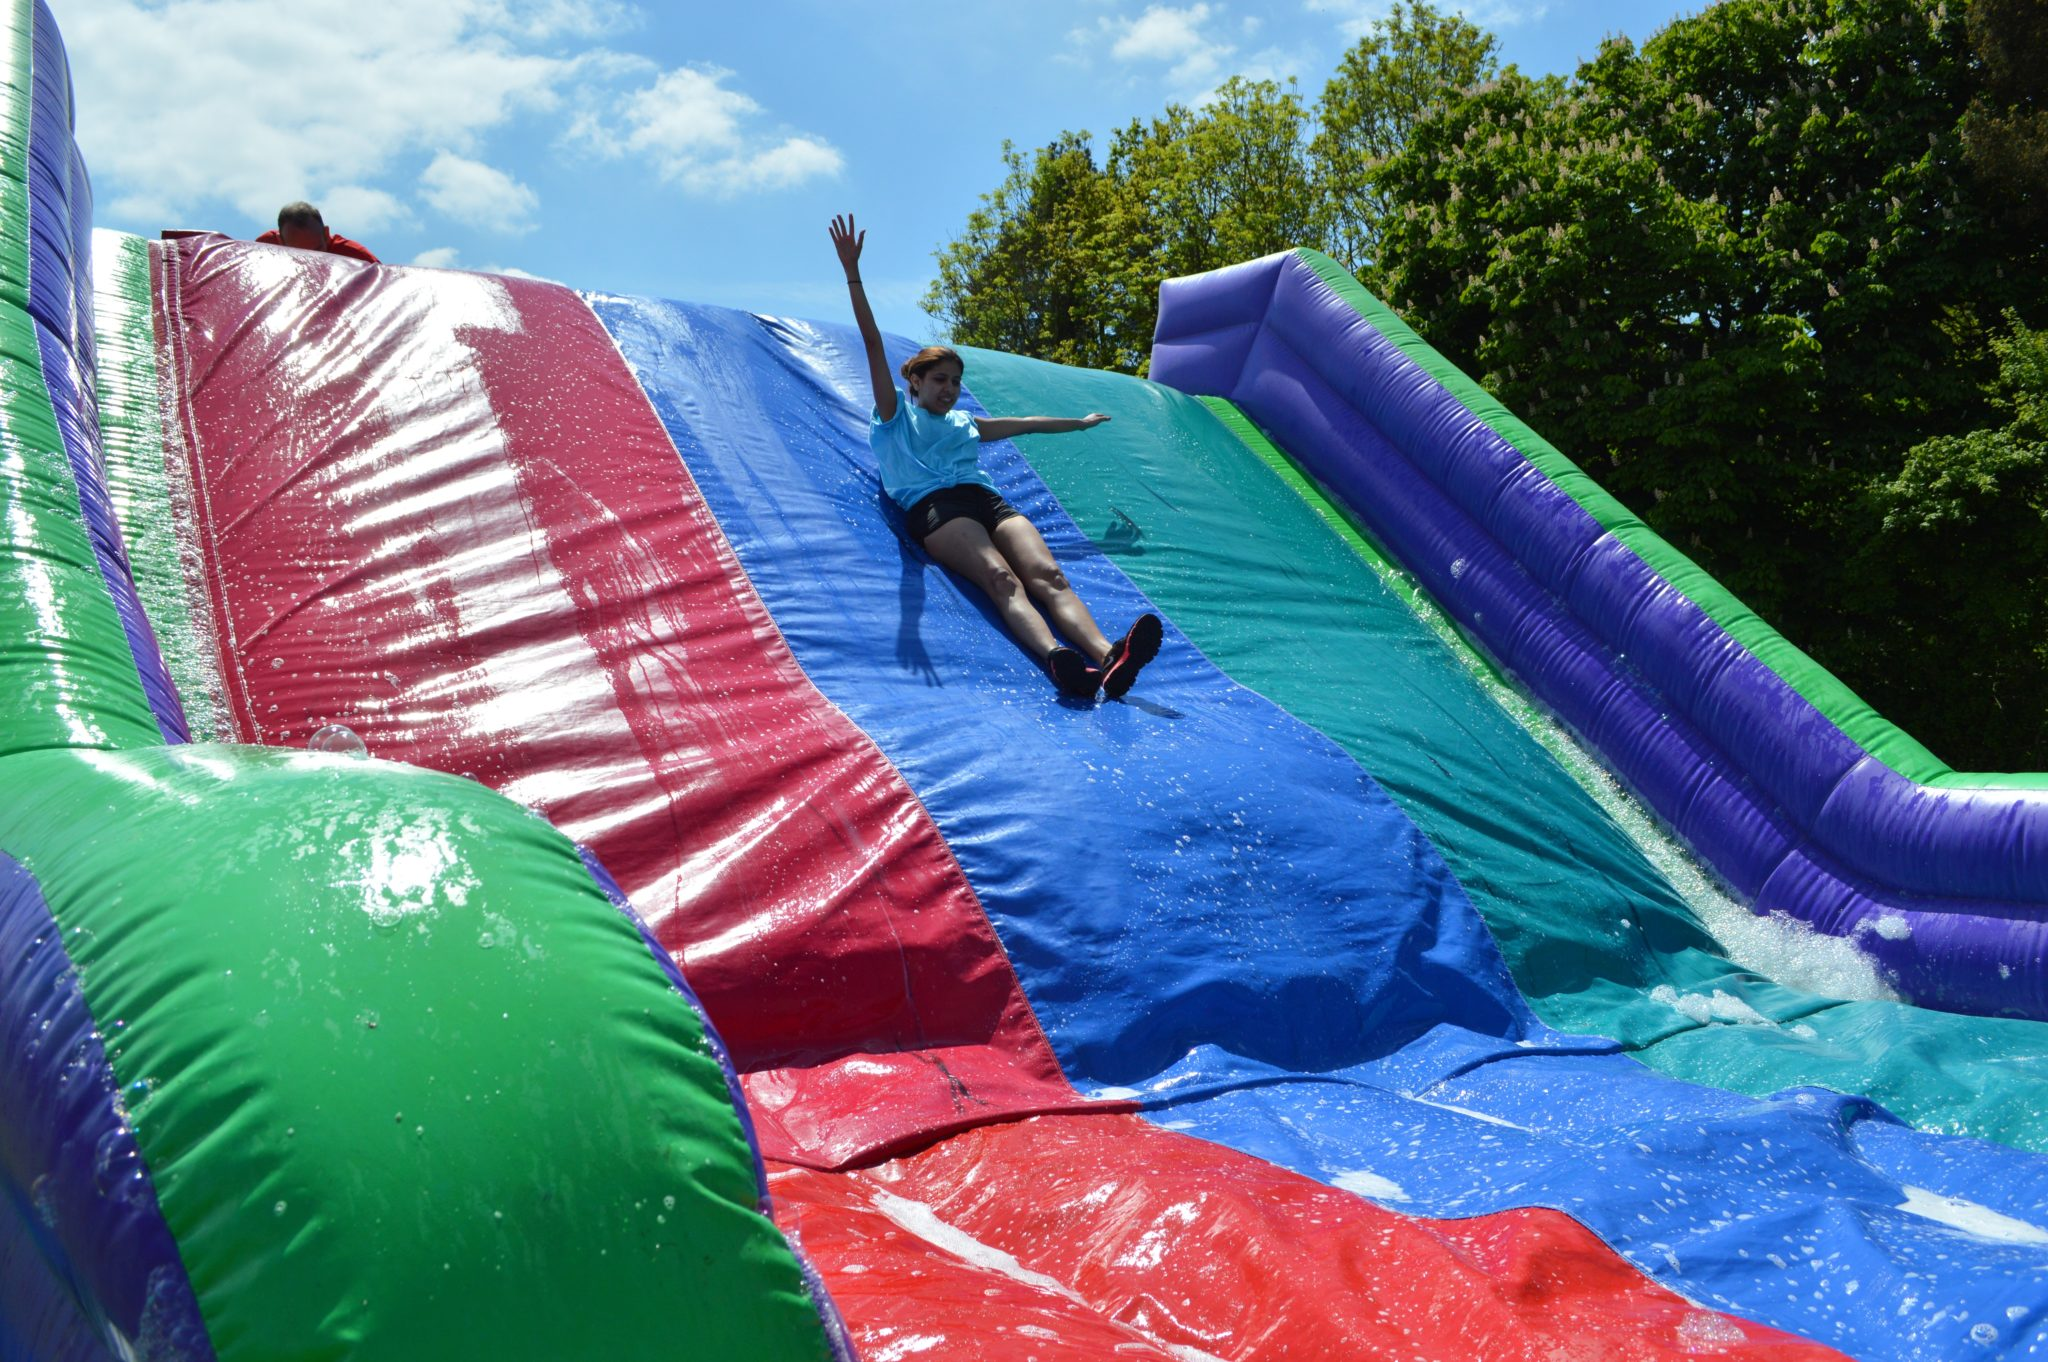 Total wipeout corporate event